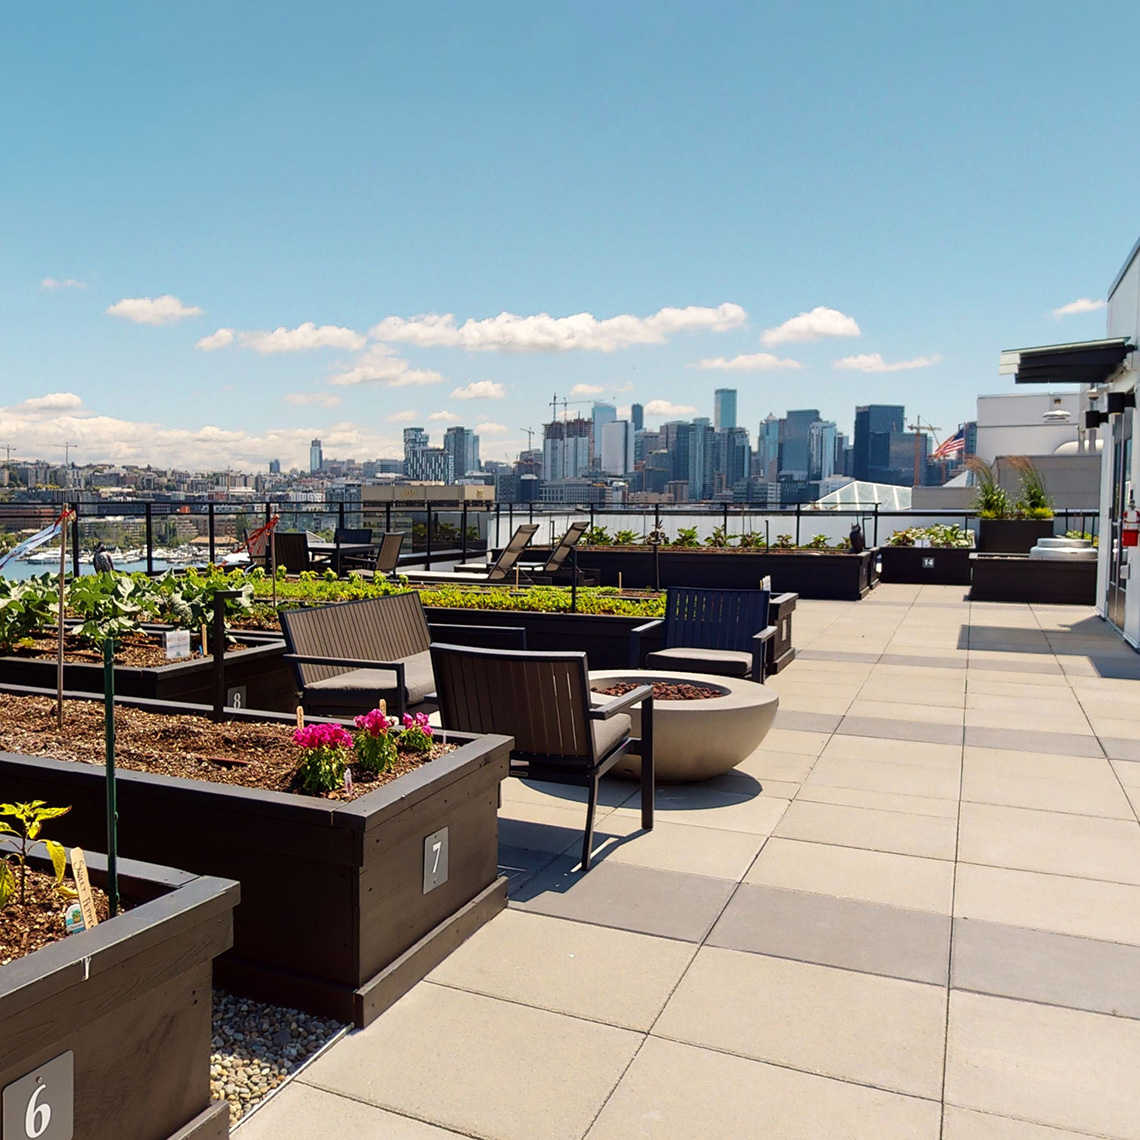 Stream Dexios Built Green 4-Star SLU apartment roof garden